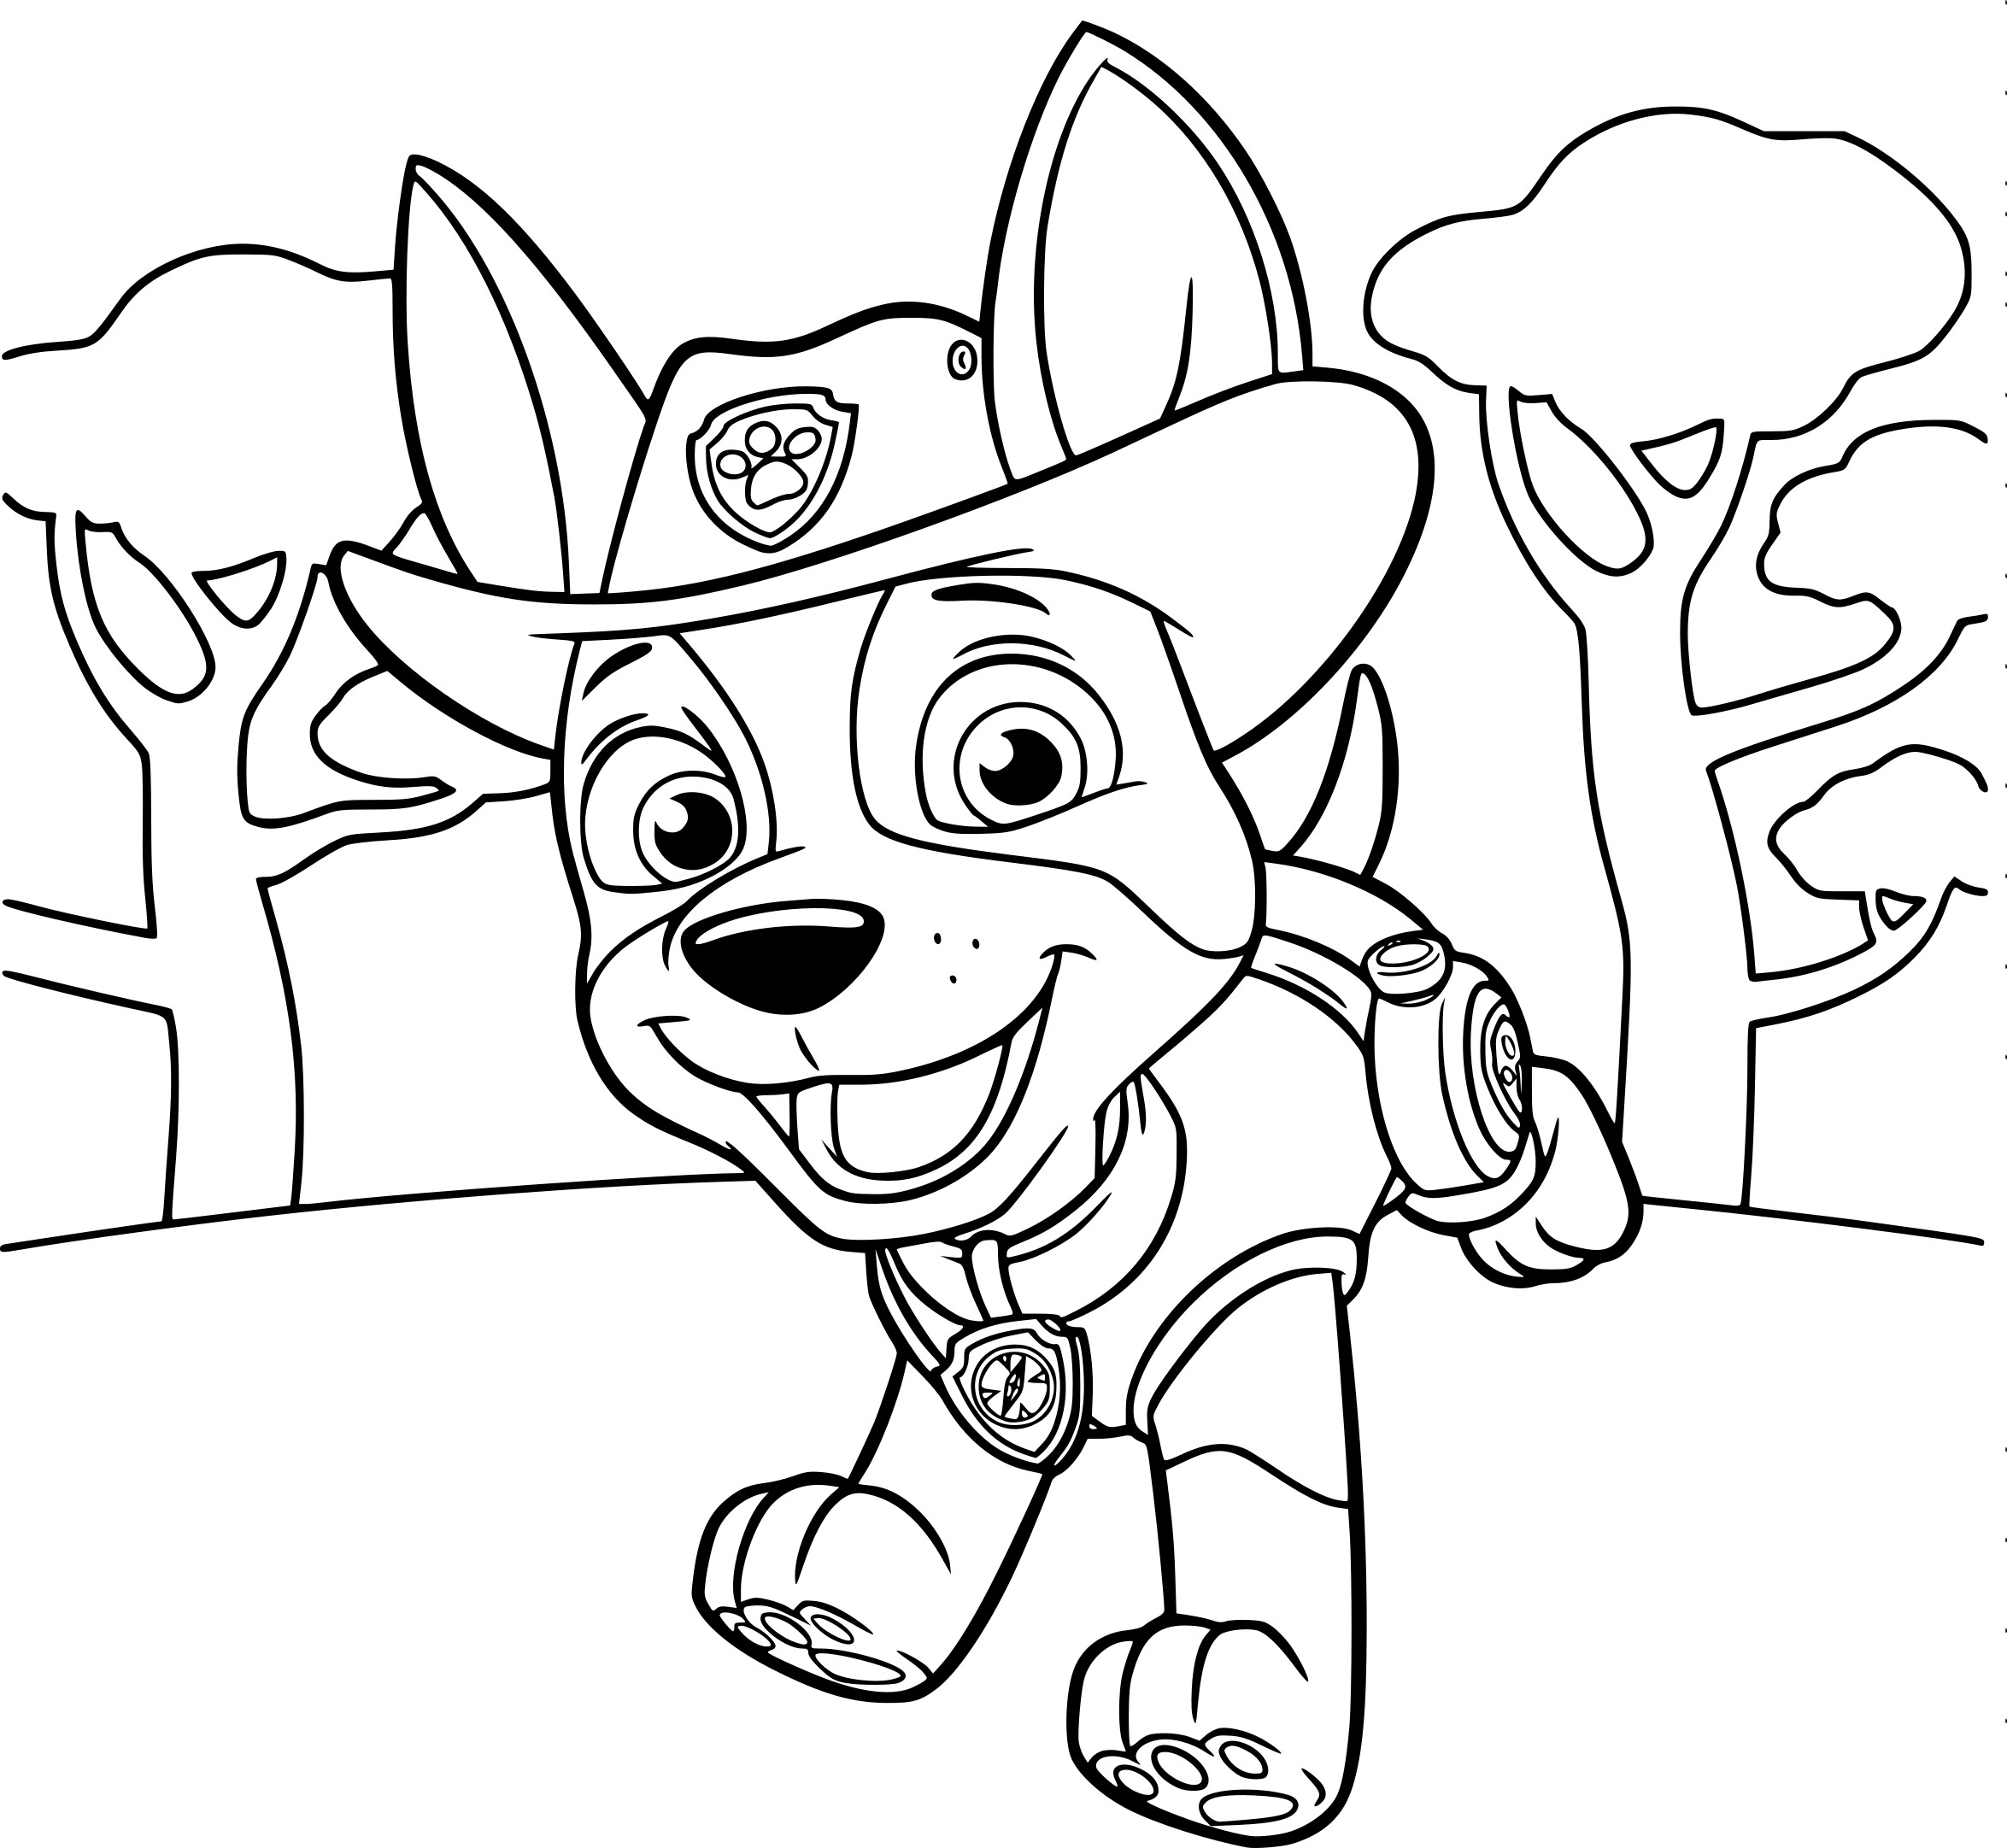 paw patrol coloring characters paw patrol for children paw patrol kids coloring pages characters paw patrol coloring